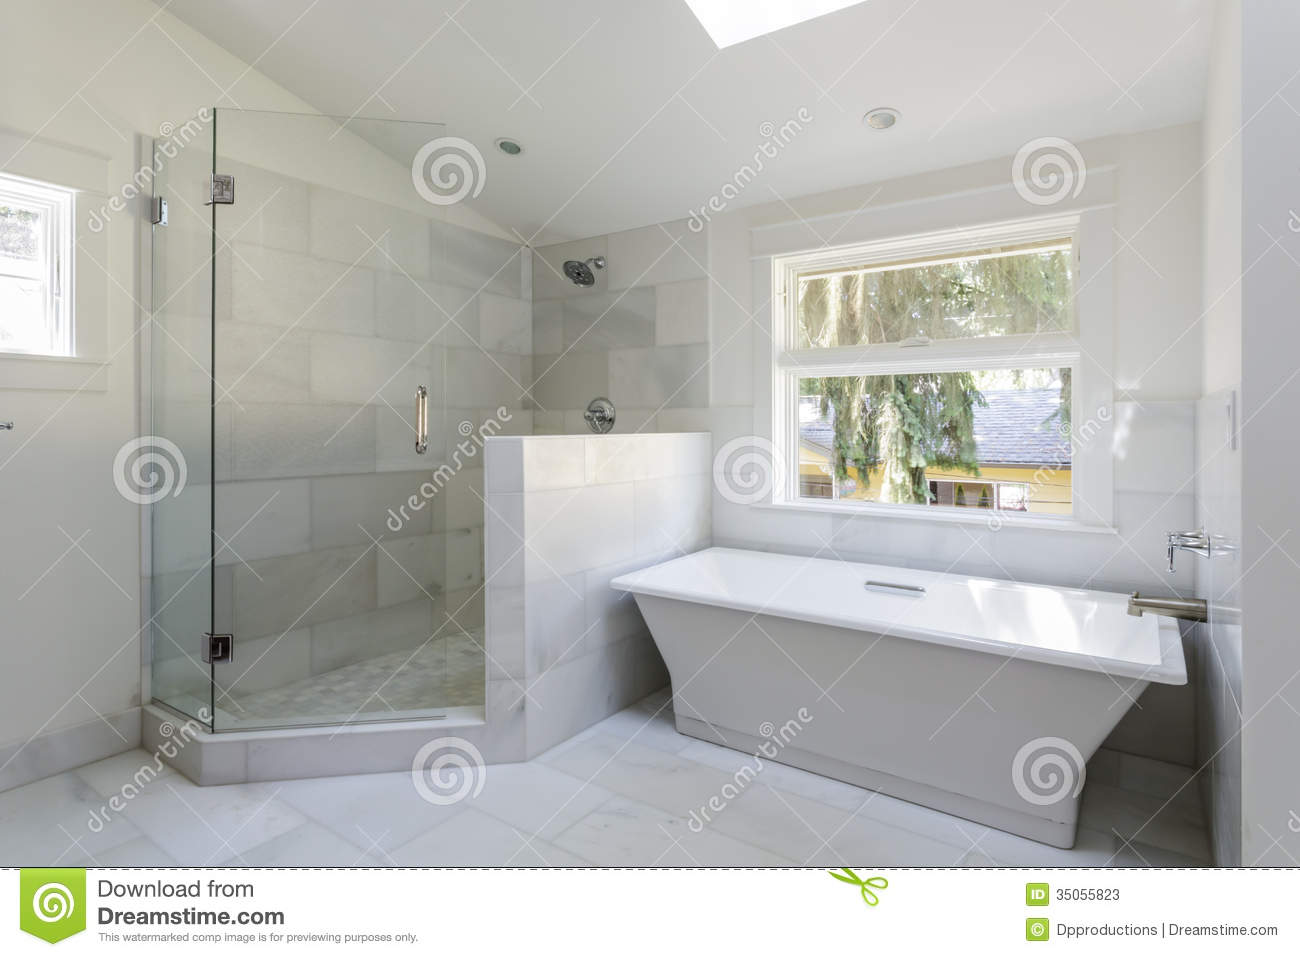 modern bathroom with shower and bathtub stock image image of horizontal home 35055823. Black Bedroom Furniture Sets. Home Design Ideas